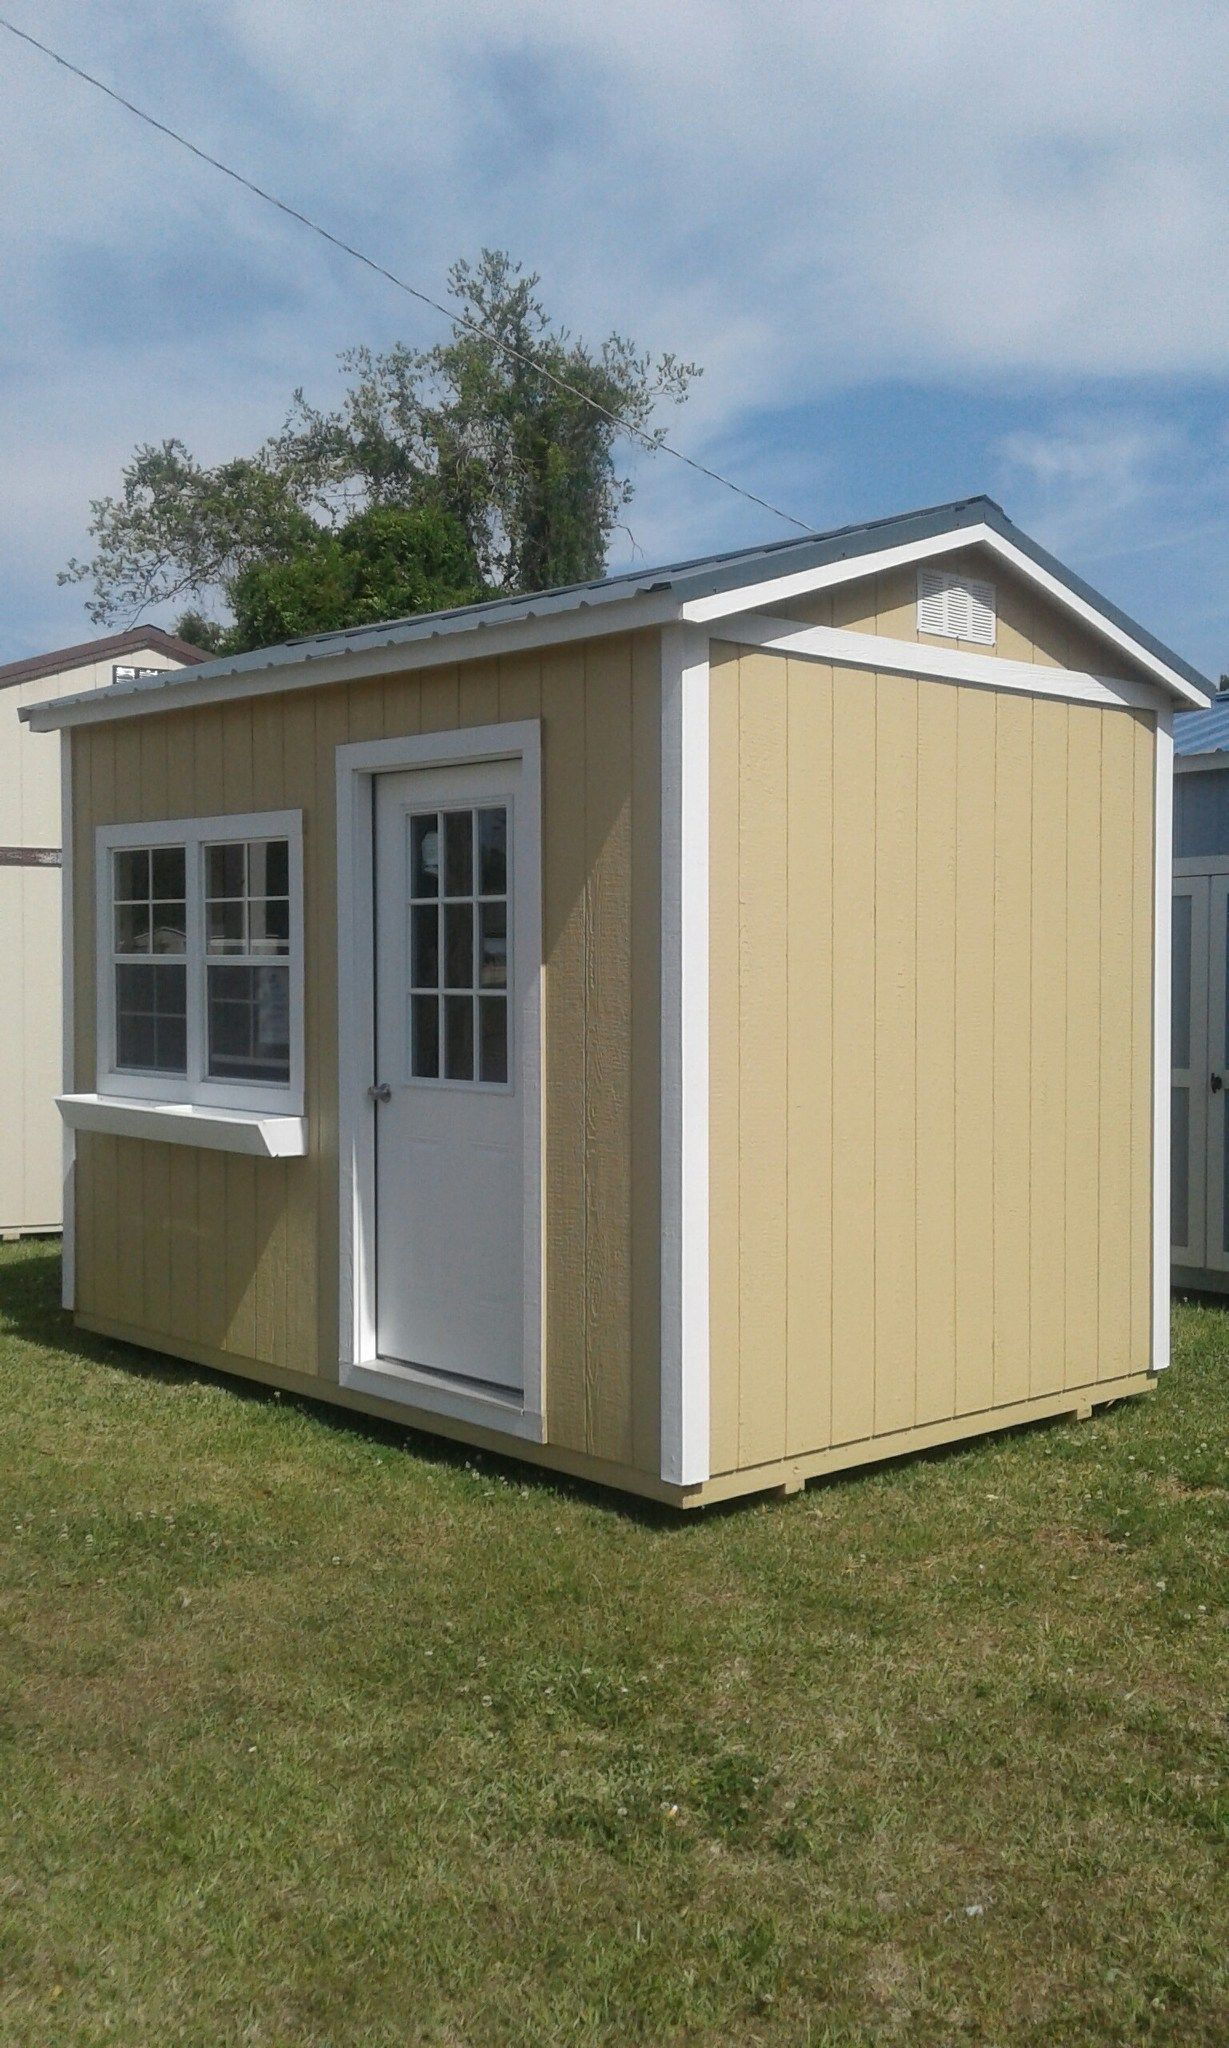 Side Garden Shed 8x12 From Coastal Portable Buildings With Standard Walk In Door 2 Windows And Fl Portable Buildings Outdoor Storage Solutions Outdoor Storage